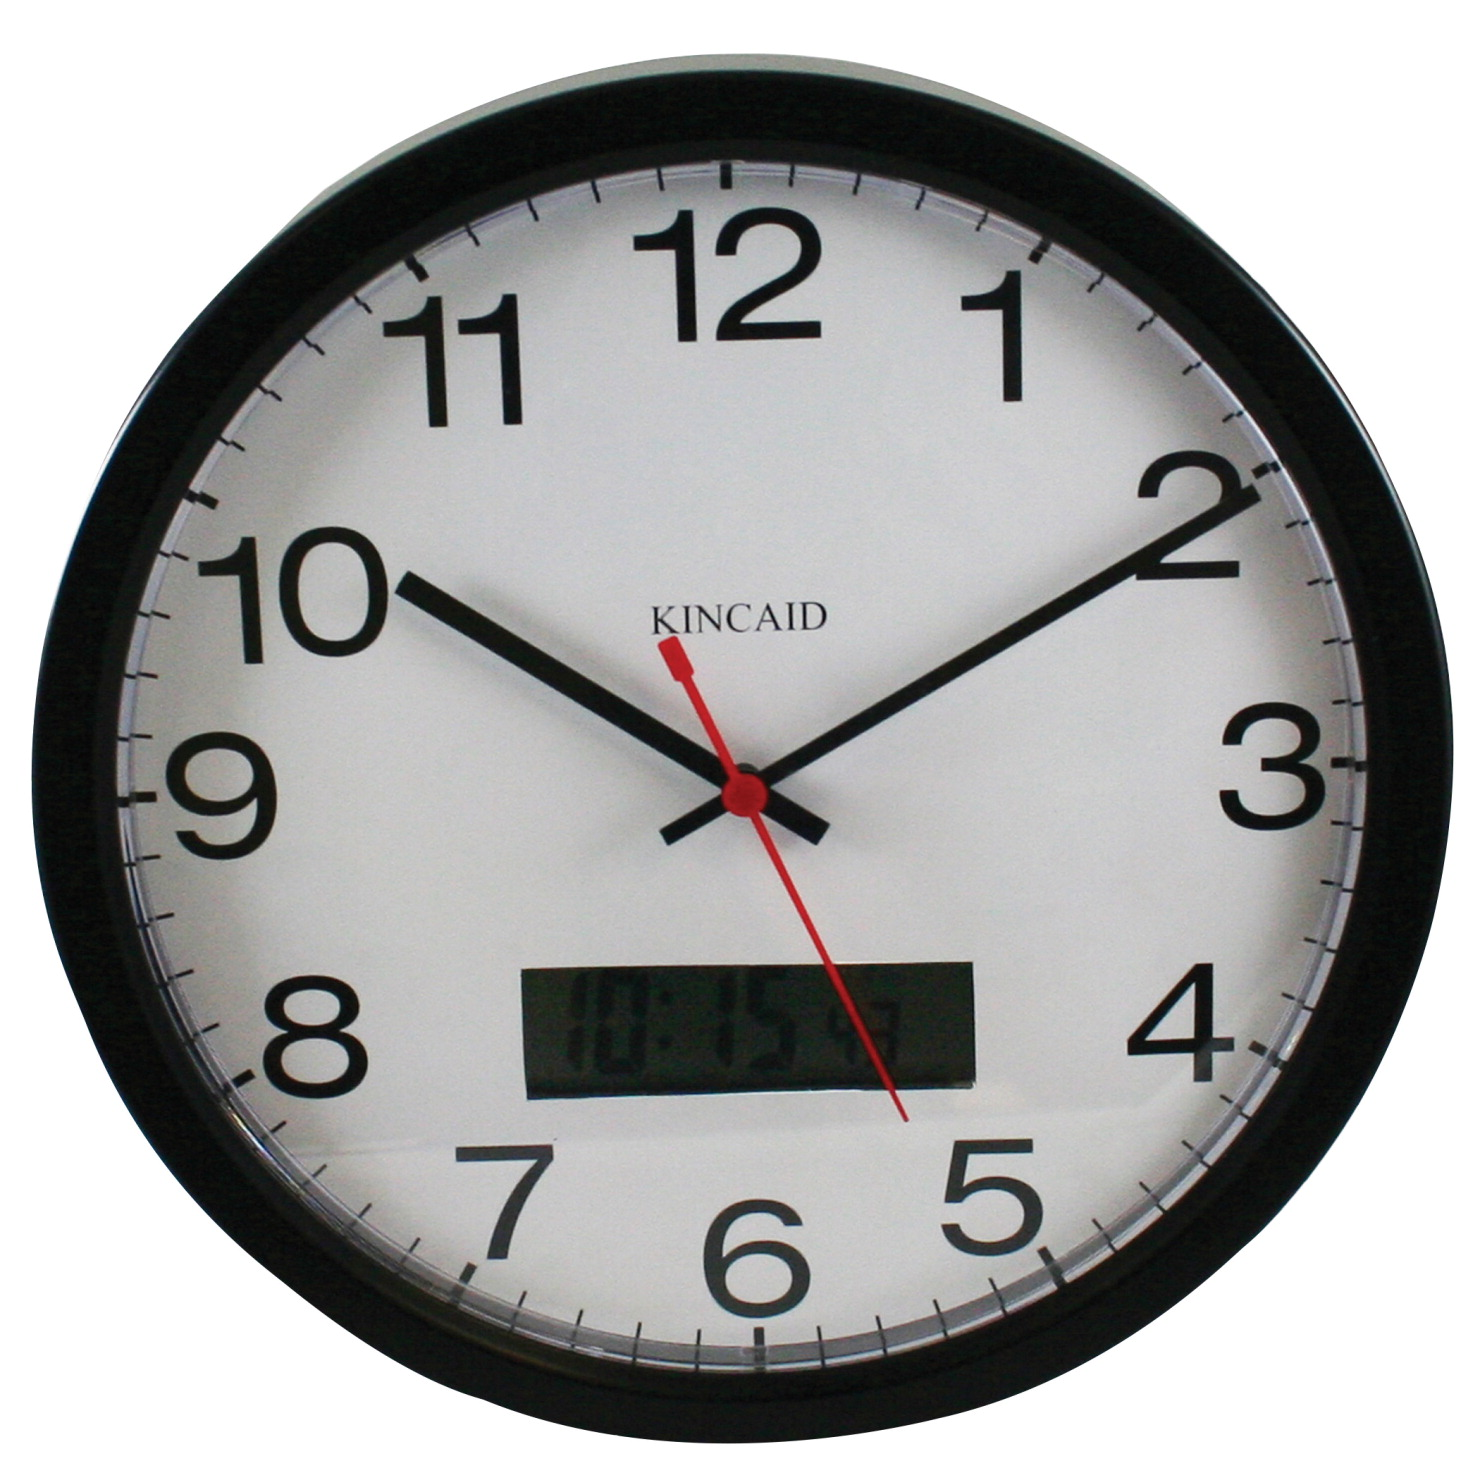 Wall clock classroom direct kincaid digital day and date display wall clock 12 in plastic frame plastic amipublicfo Choice Image